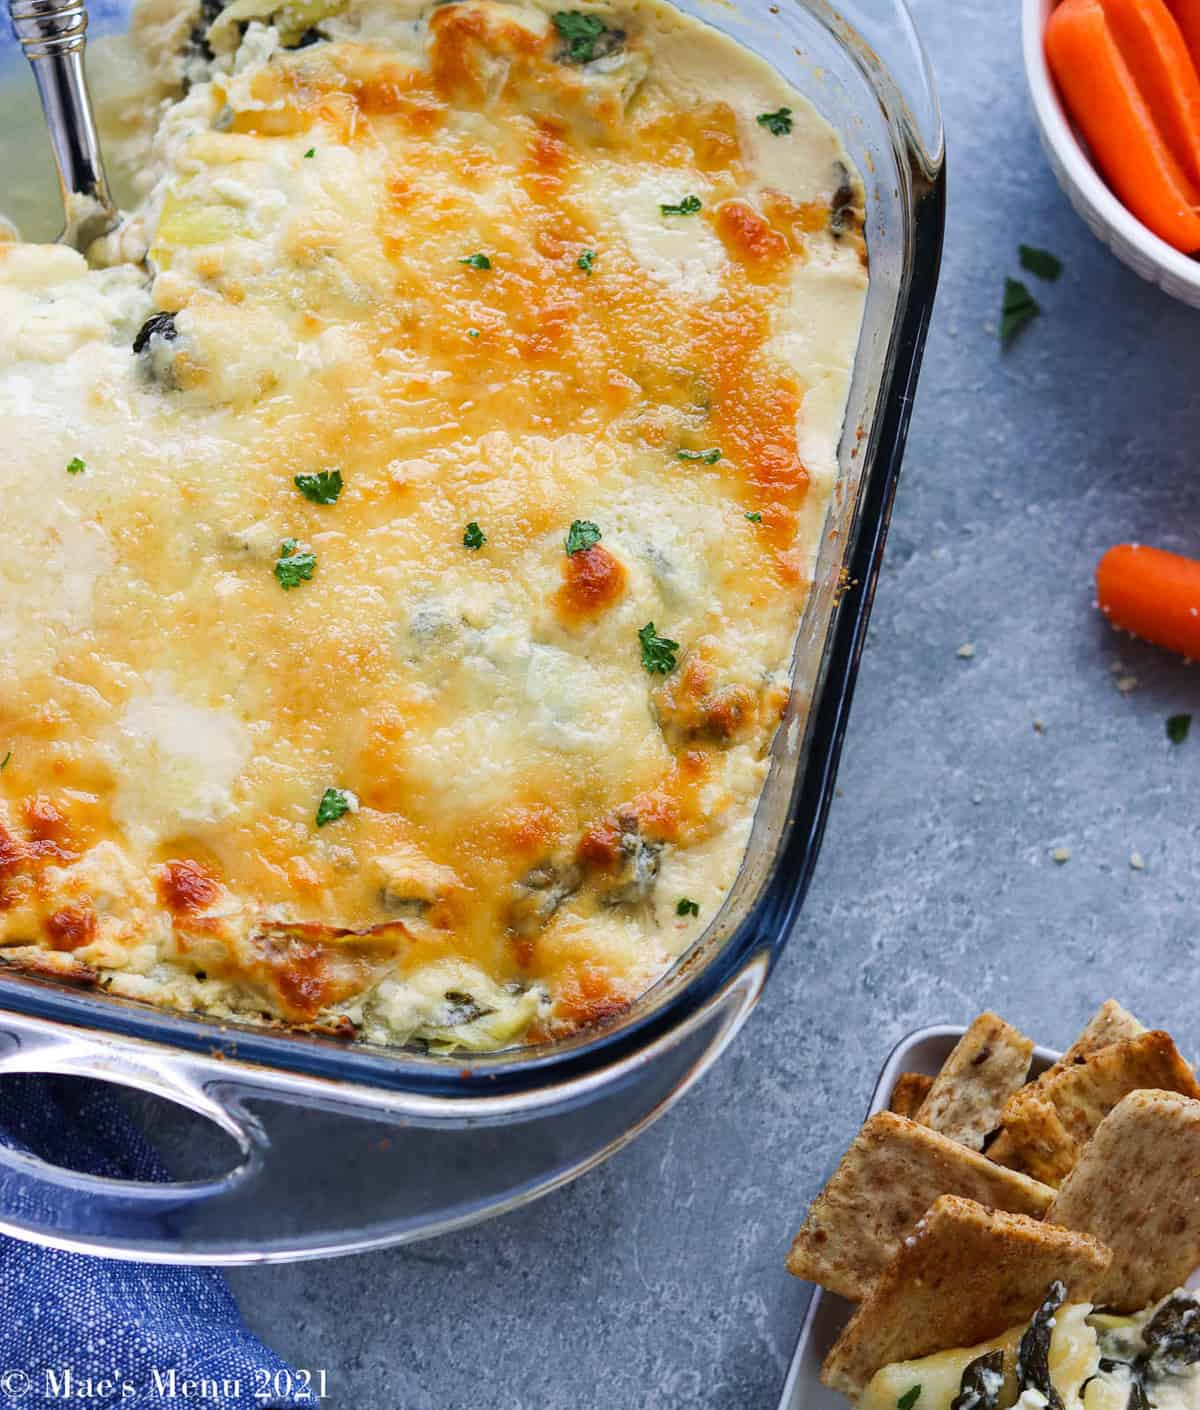 An overhead shot of a corner or spinach artichoke dip next to a small dish of the dip with crackers and a cup of carrots